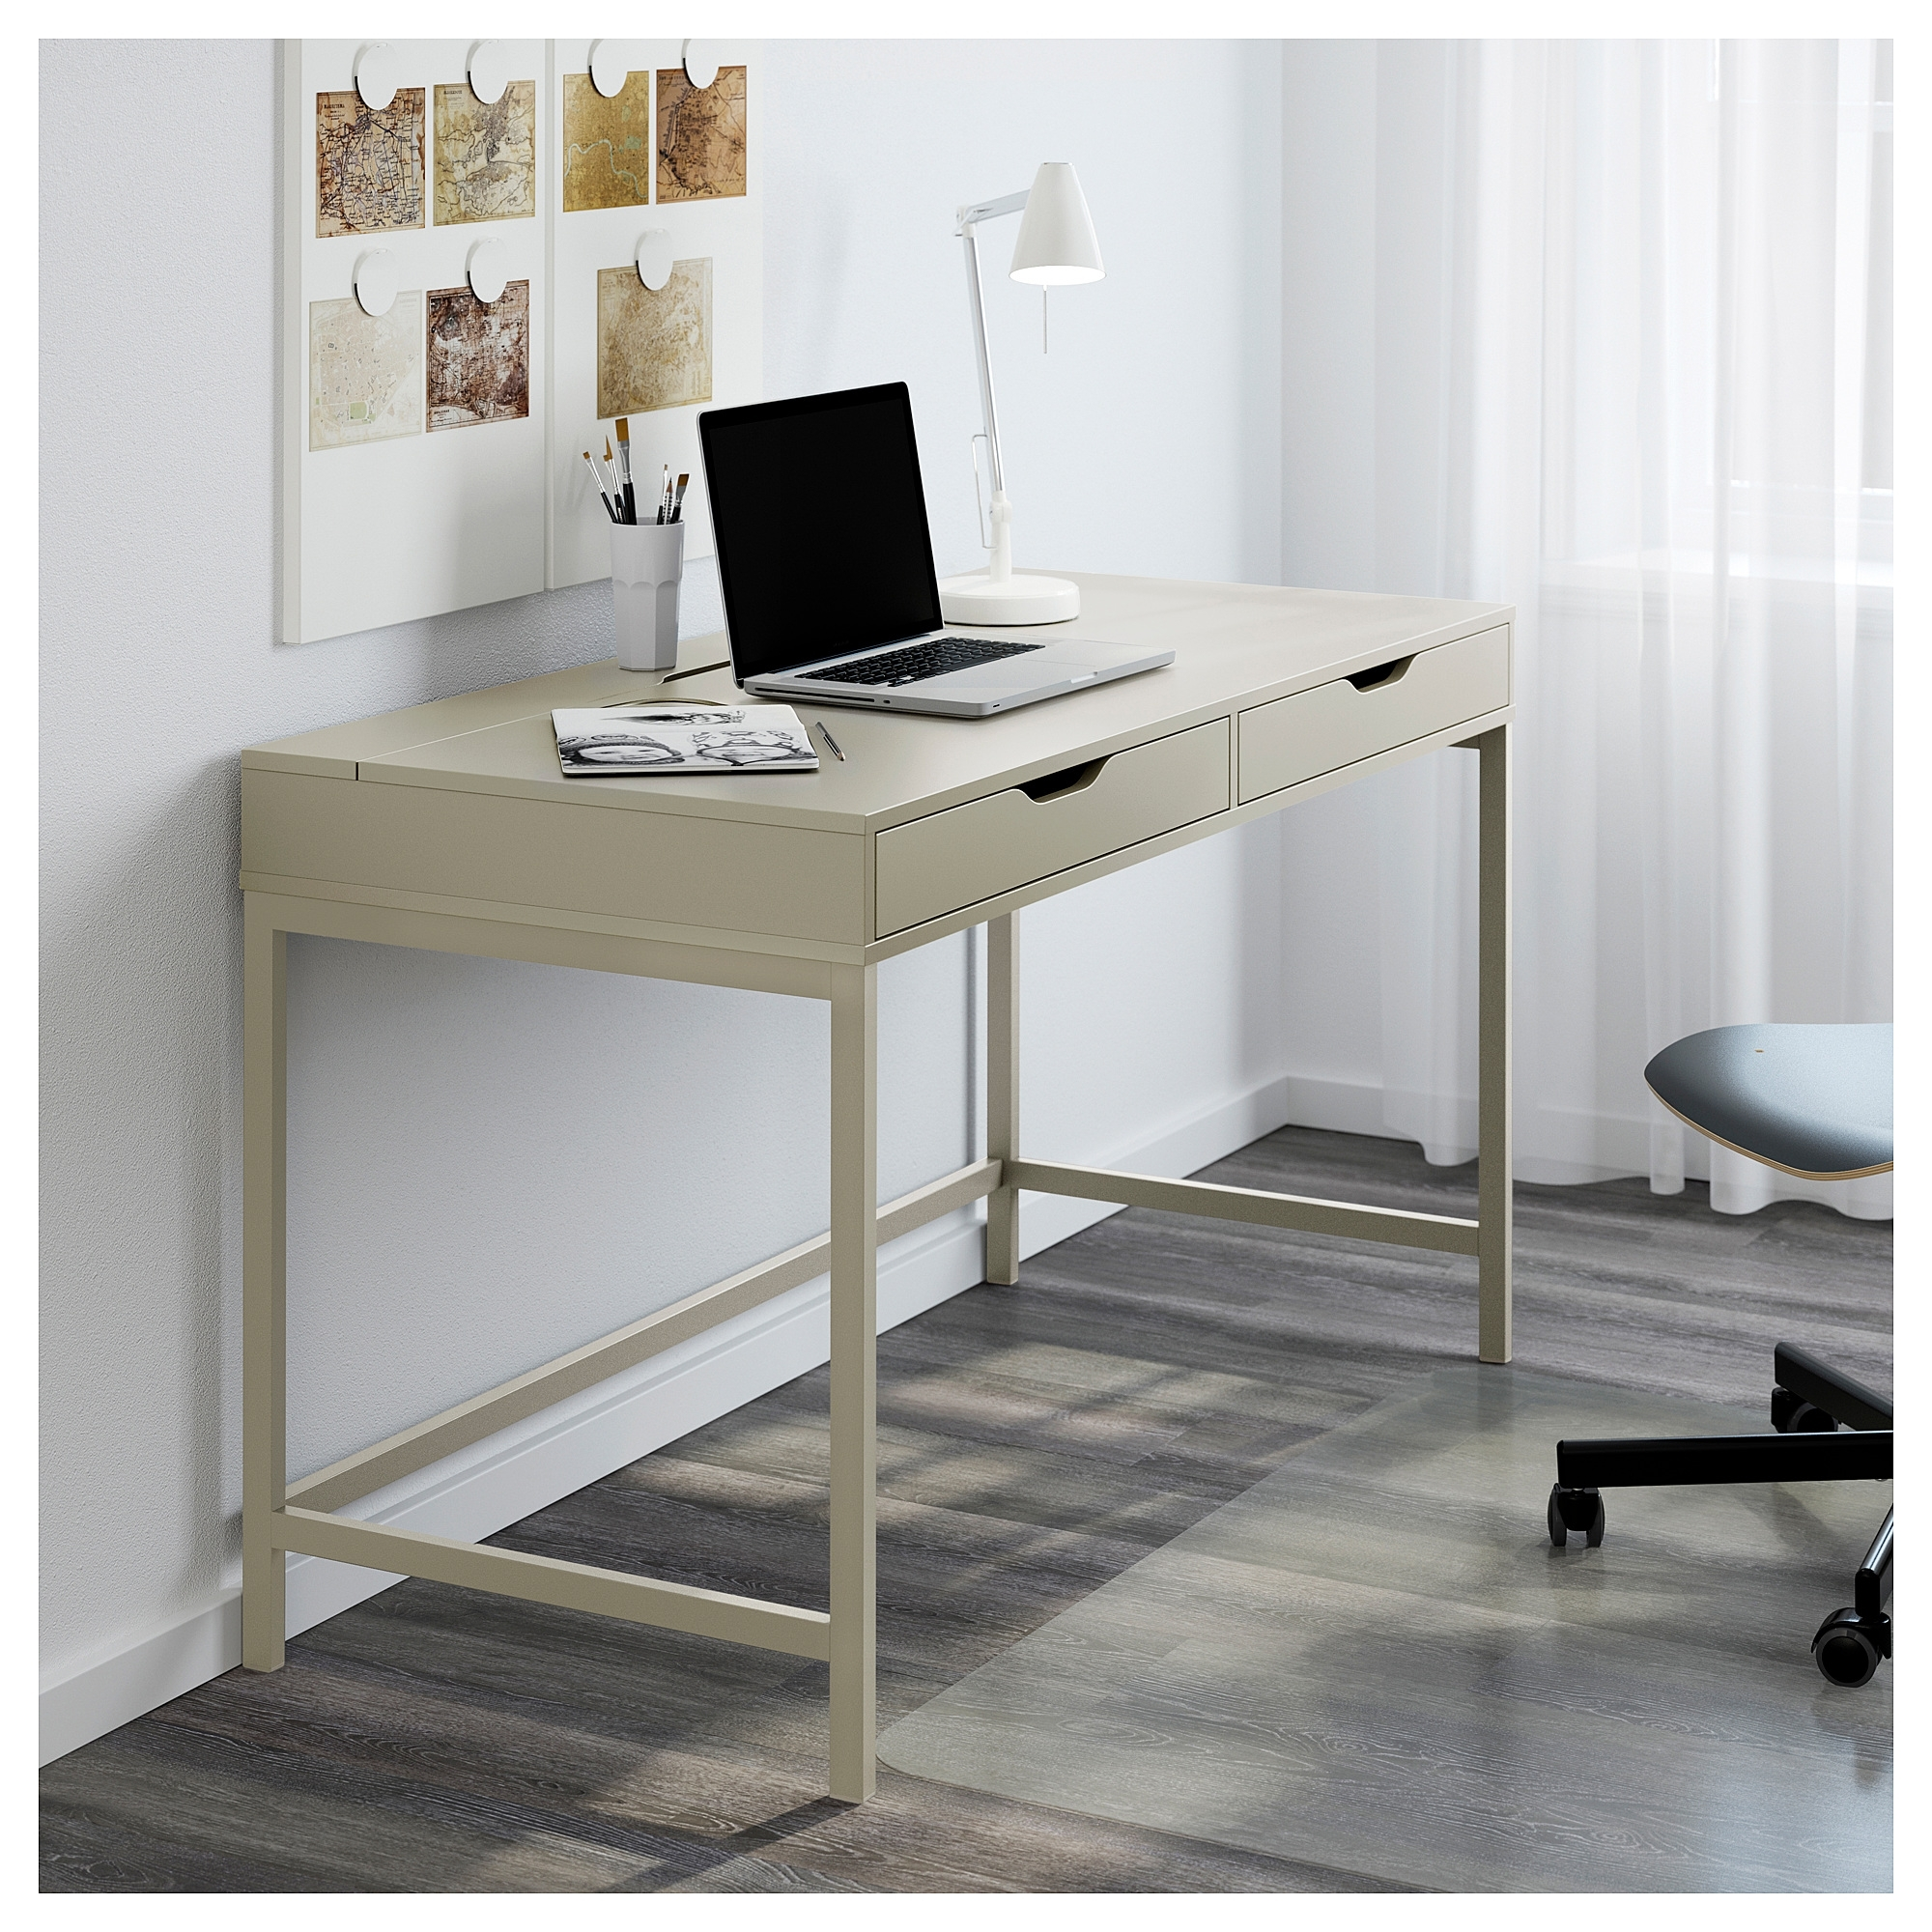 marvelous metal standing side insight ikea table small with top hutch chairs desk computer